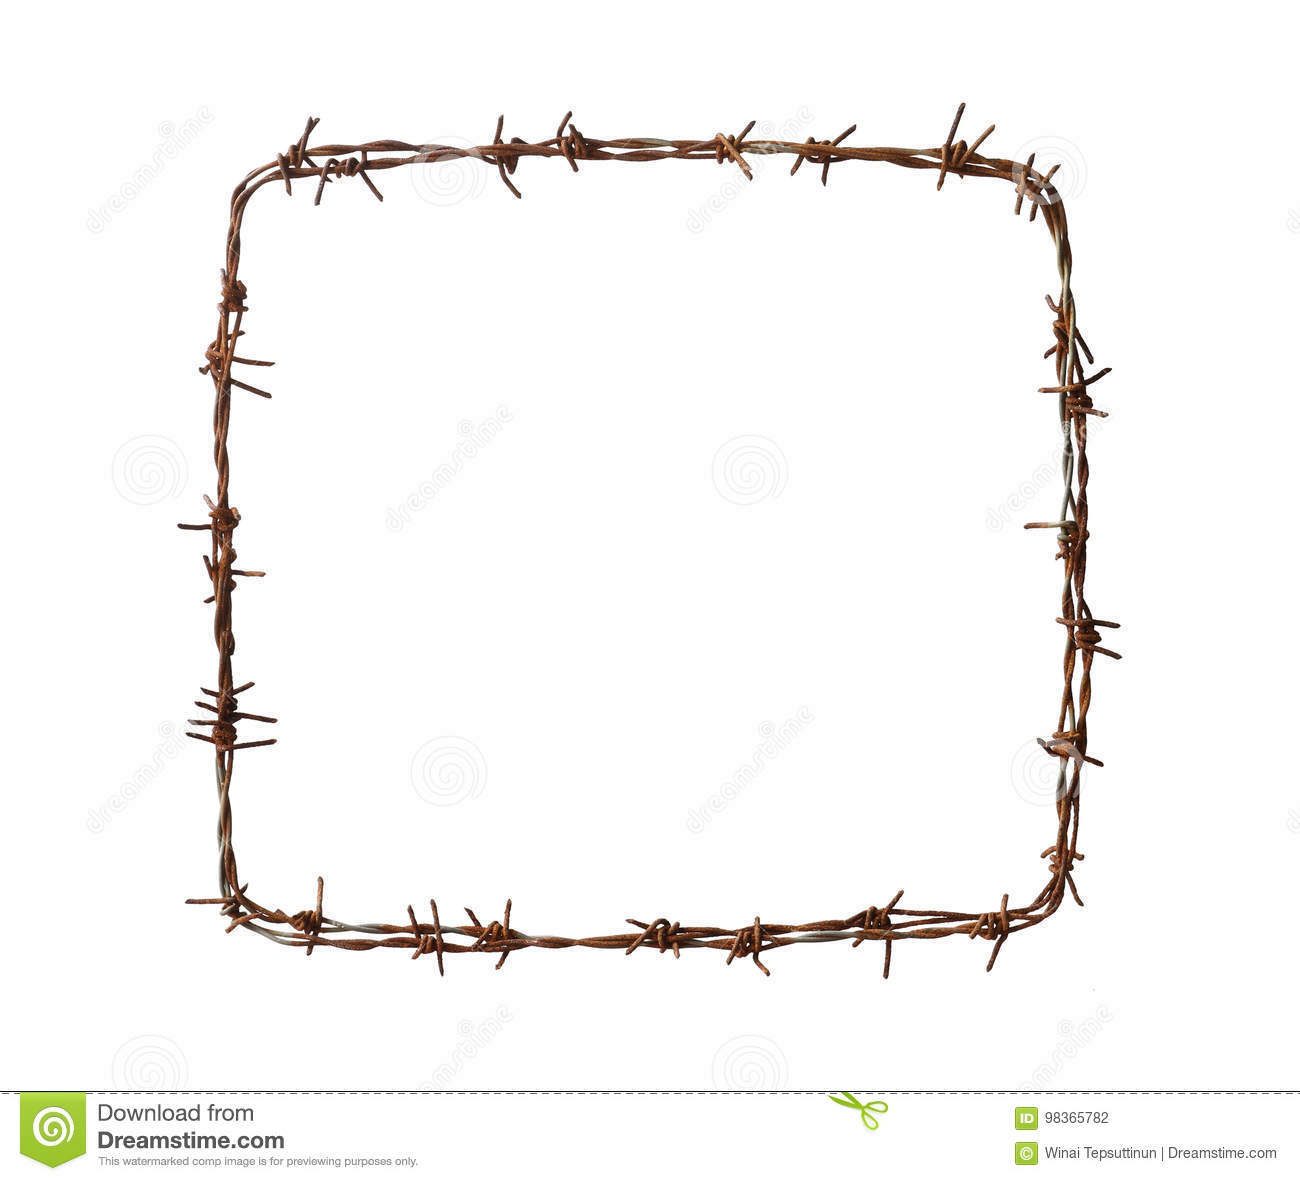 Barbed wire square stock photo. Image of defense, barbwire - 98365782